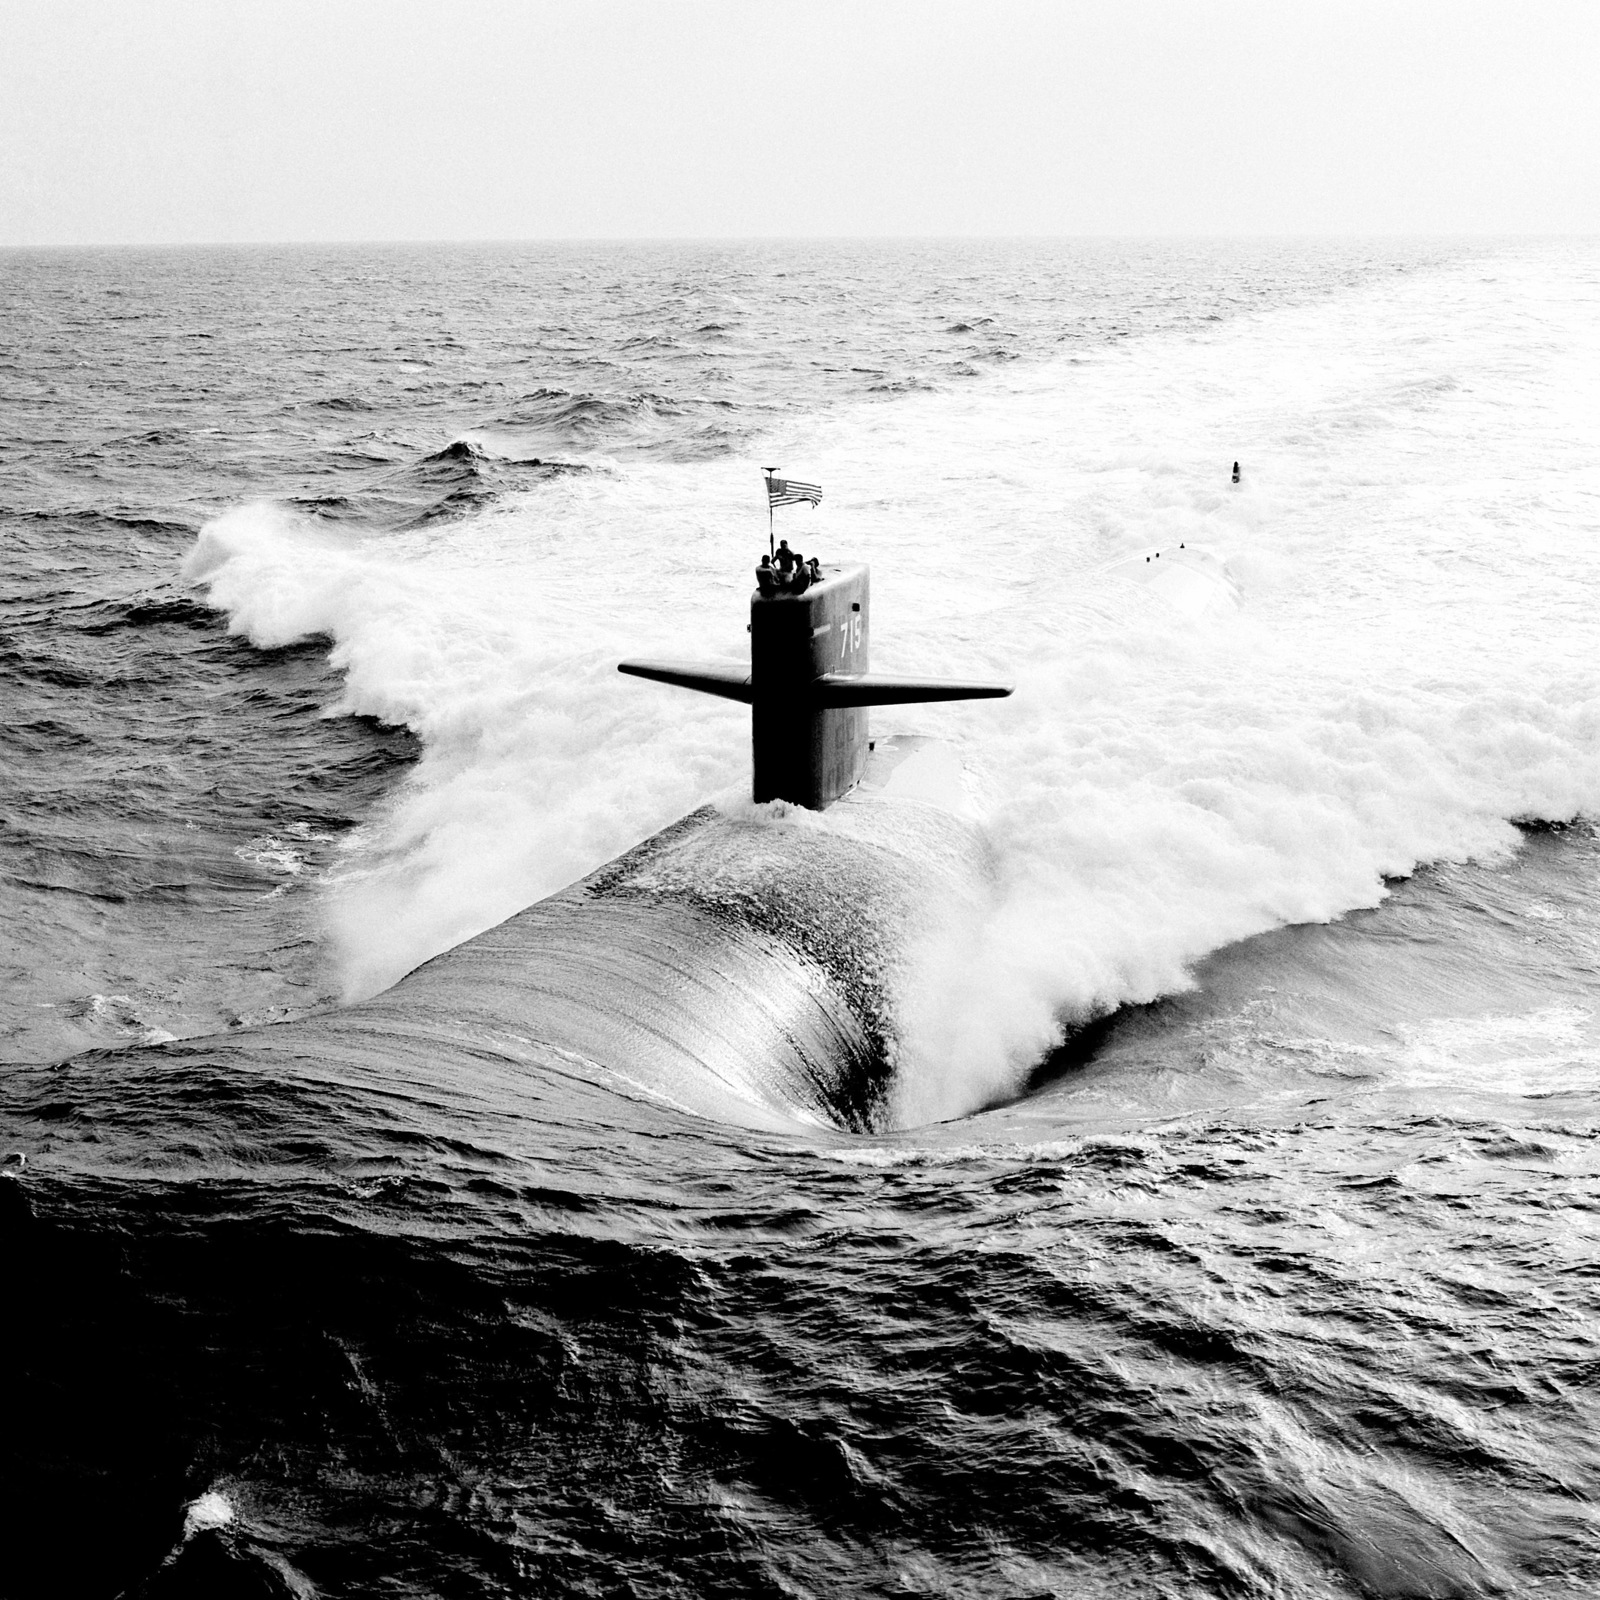 An aerial port bow view of the Los Angeles class nuclear-powered attack submarine USS BUFFALO (SSN 715) underway